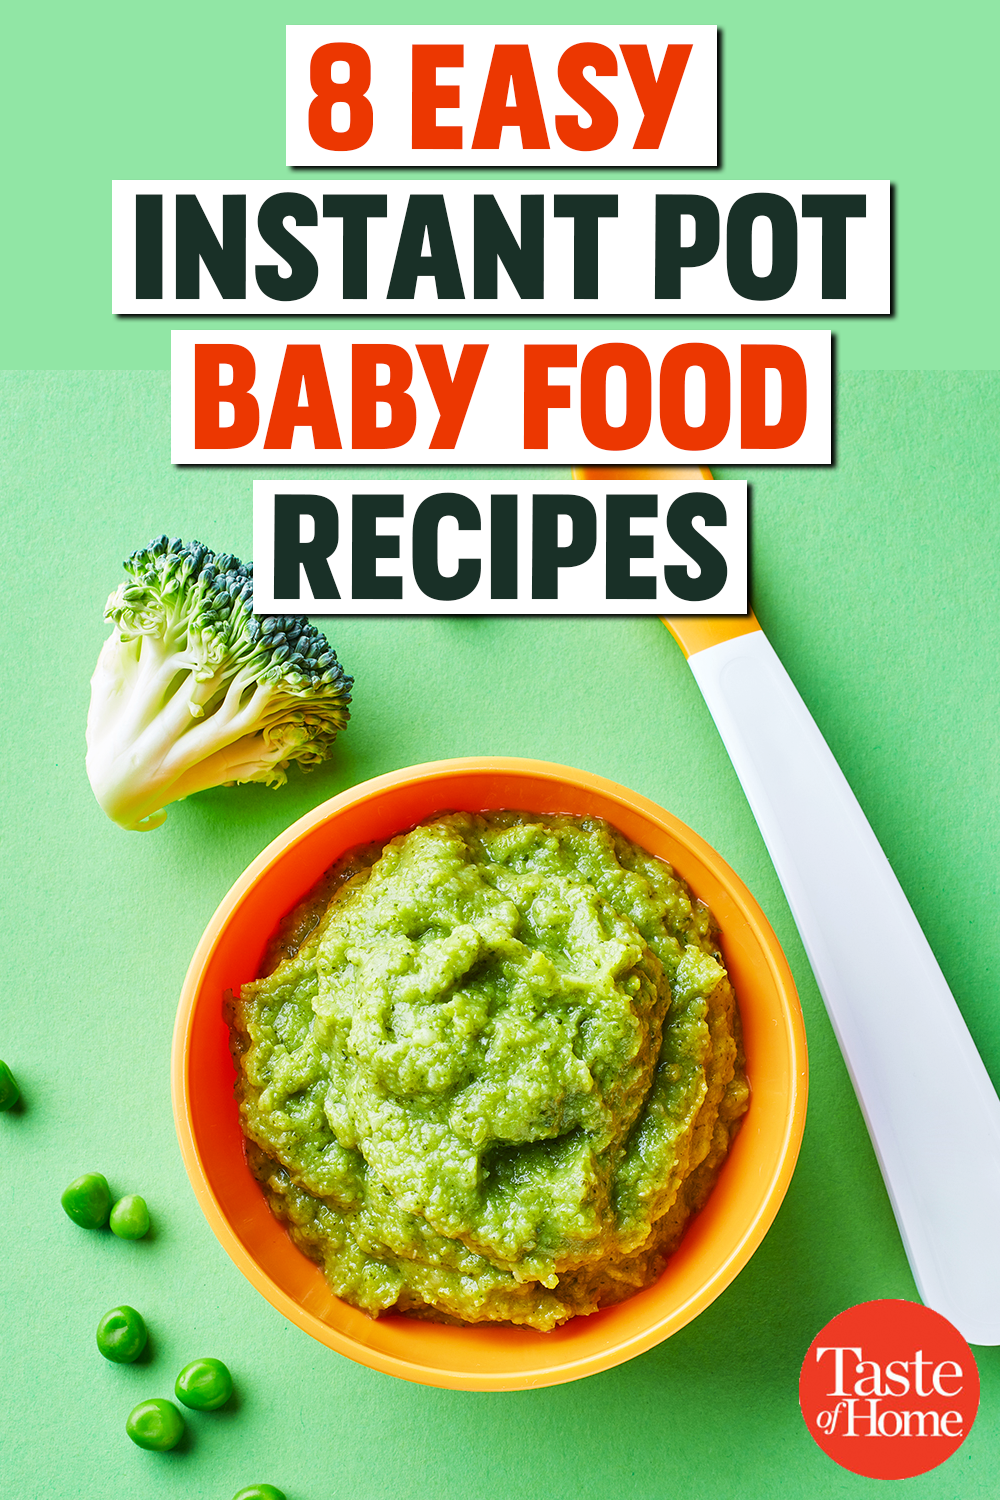 8 Easy Instant Pot Baby Food Recipes